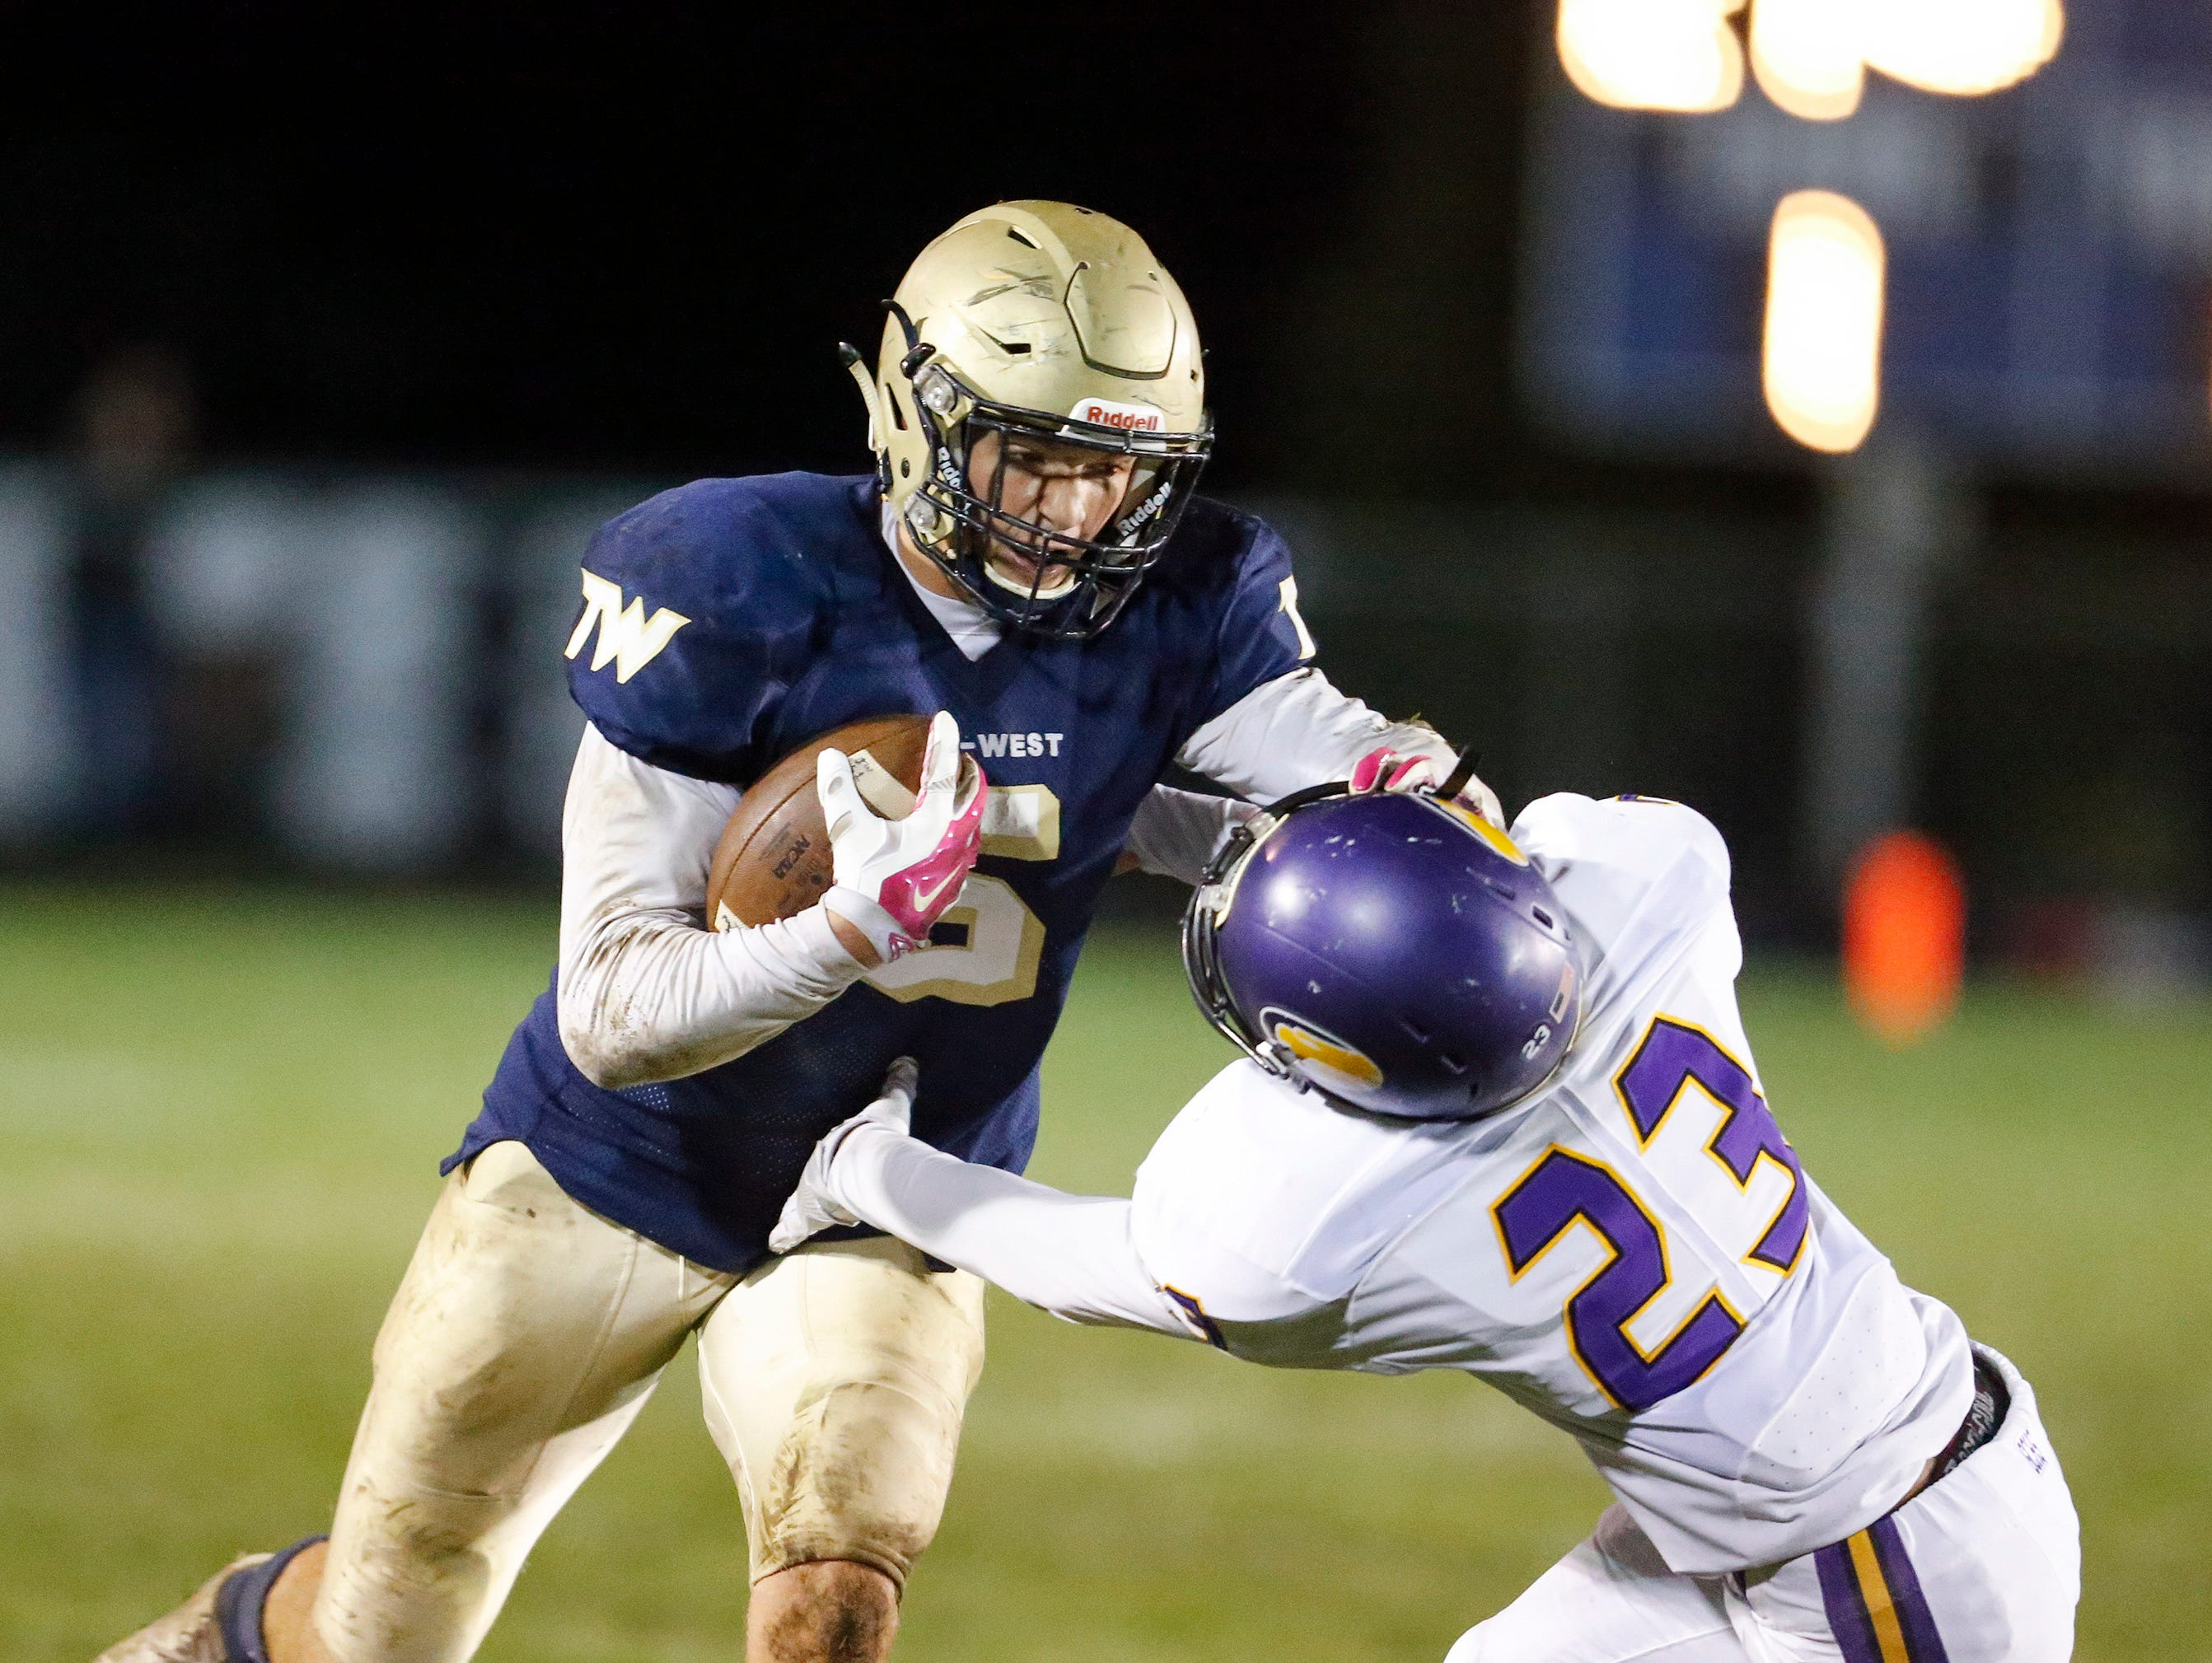 Tri-West's Peyton Hendershot (5) stiff arms Guerin Catholic's Shawn Balance (23) during their sectional game at Tri-West.